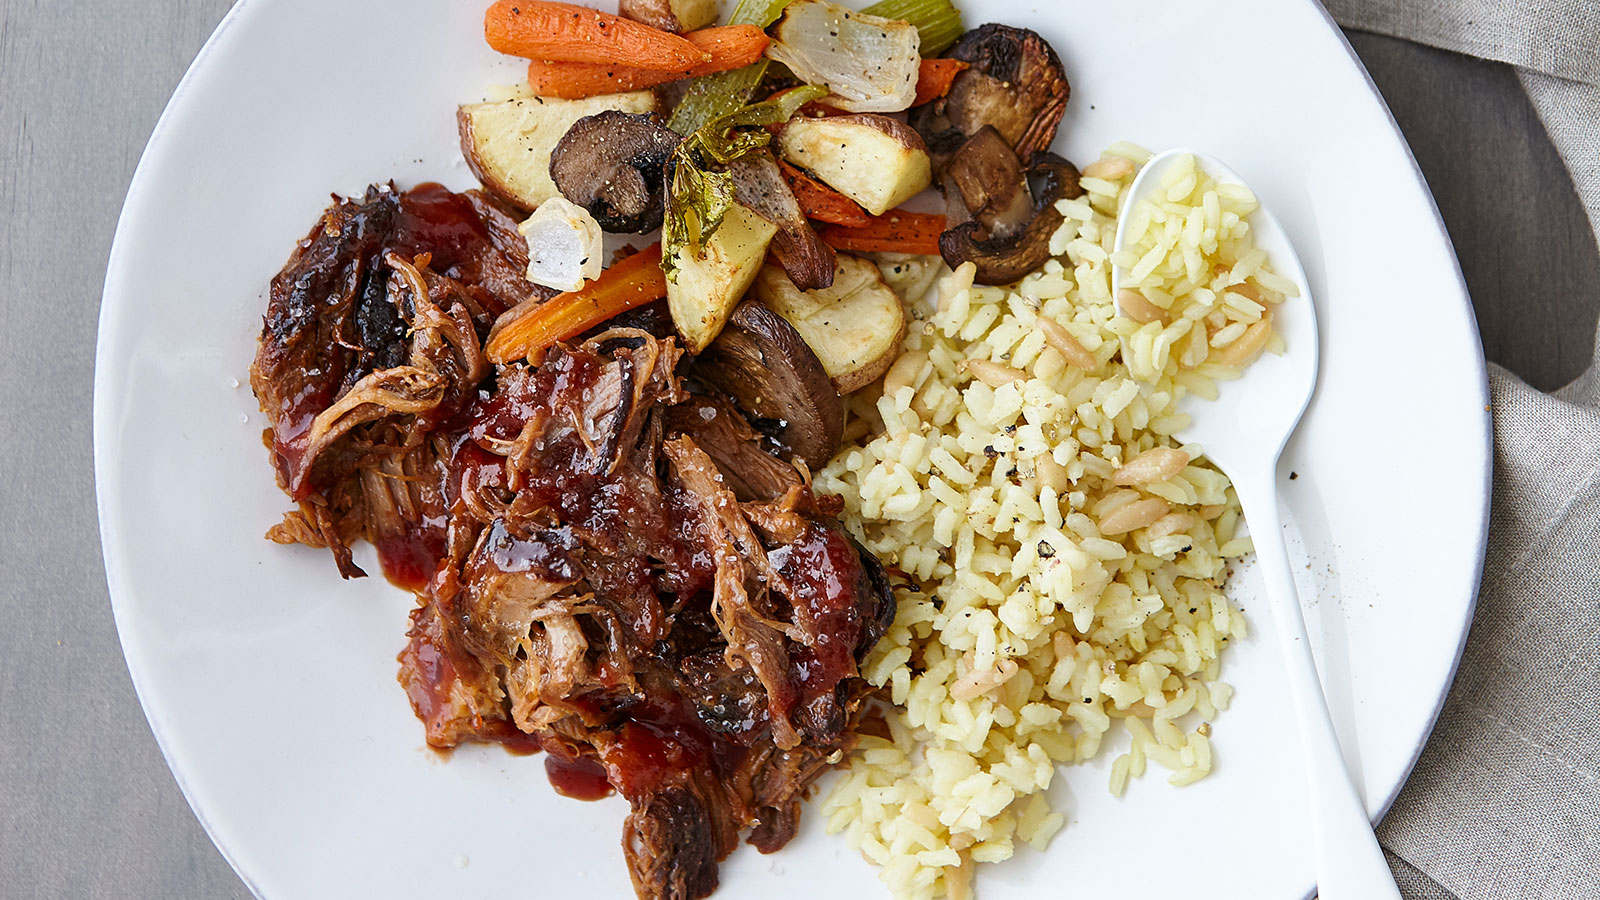 Slow-Cooker-Pulled-Pork-Barbecue-with-Roasted-Vegetables-and-Rice-Pilaf-LBM